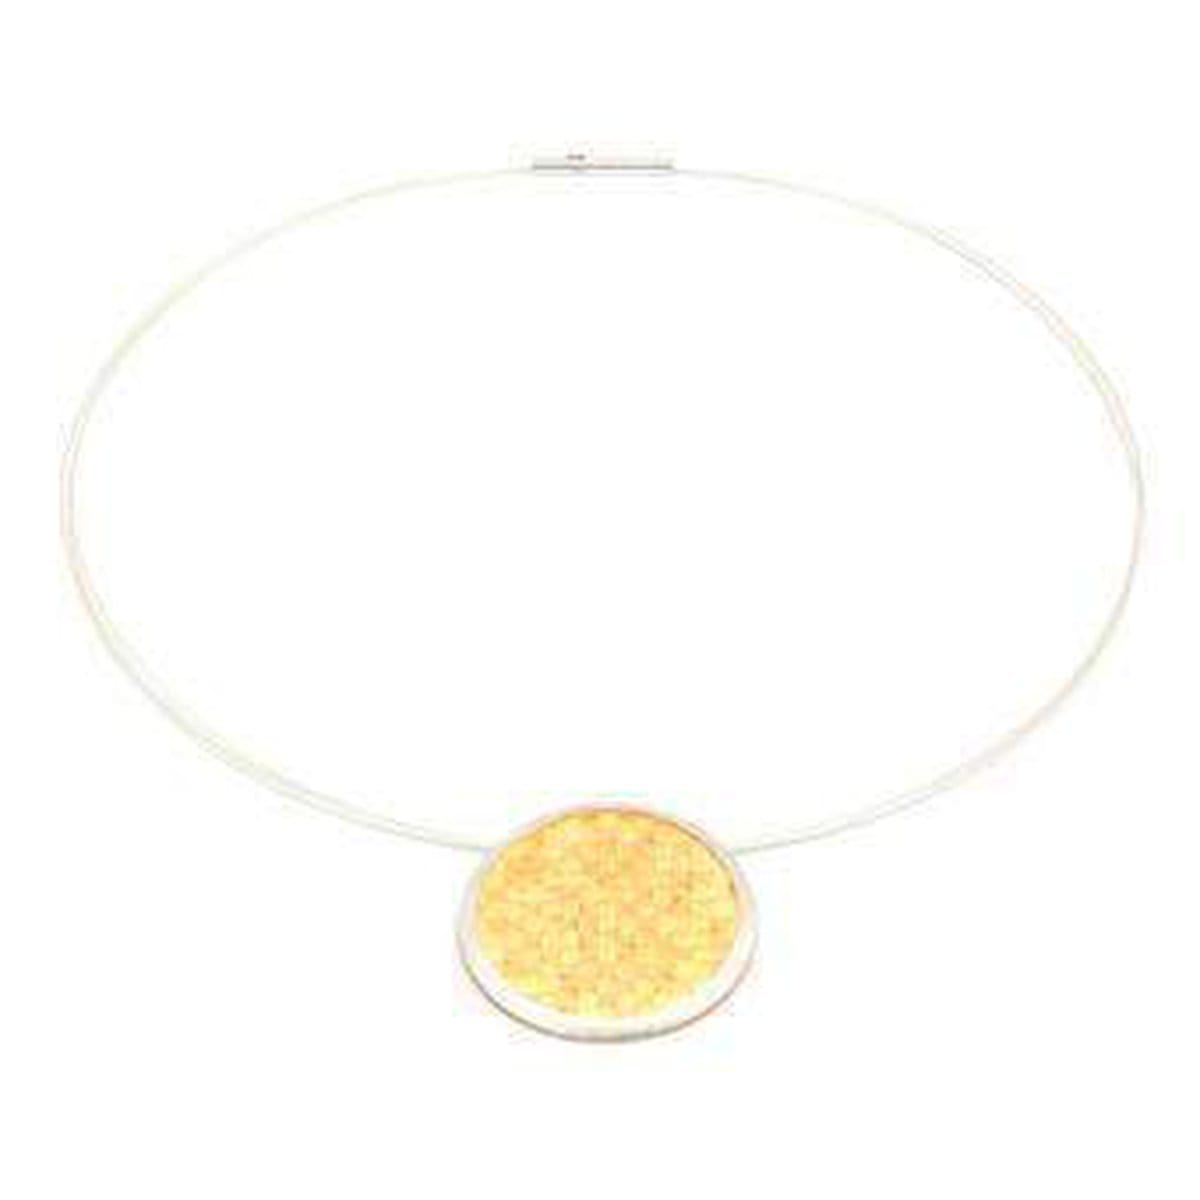 Mosaik Bicolor Necklace - 87985584